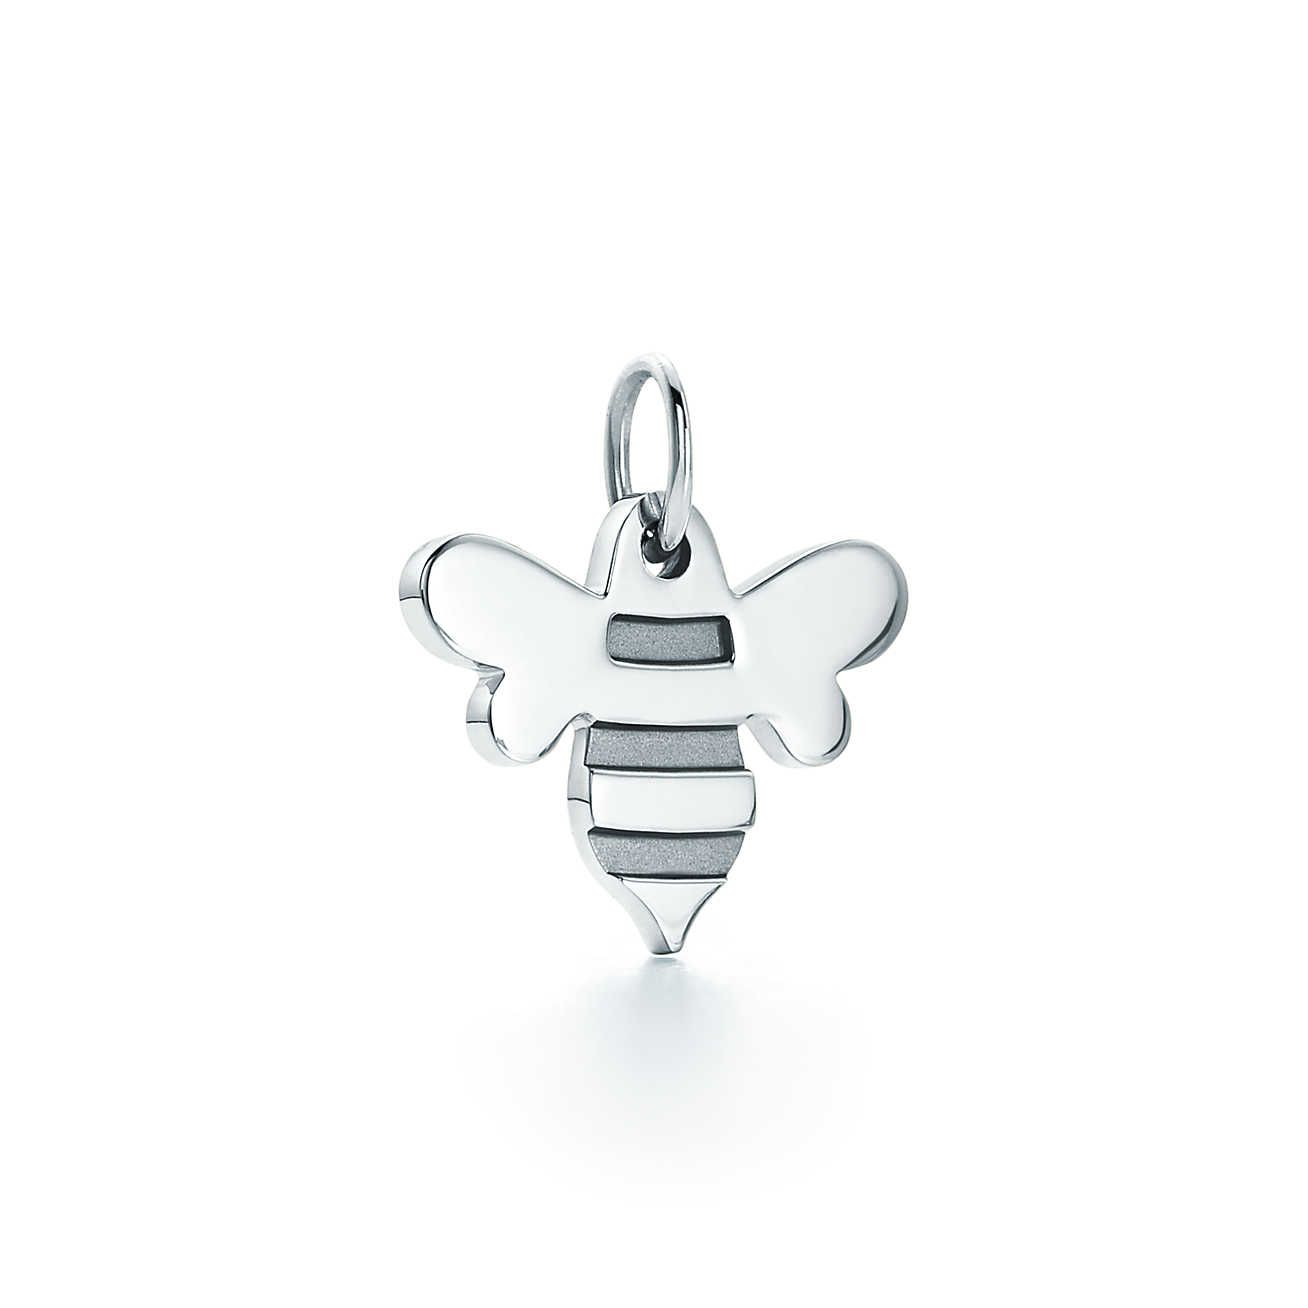 5c4263cd7 Tiffany Charms honey bee charm in sterling silver. | Tiffany & Co.